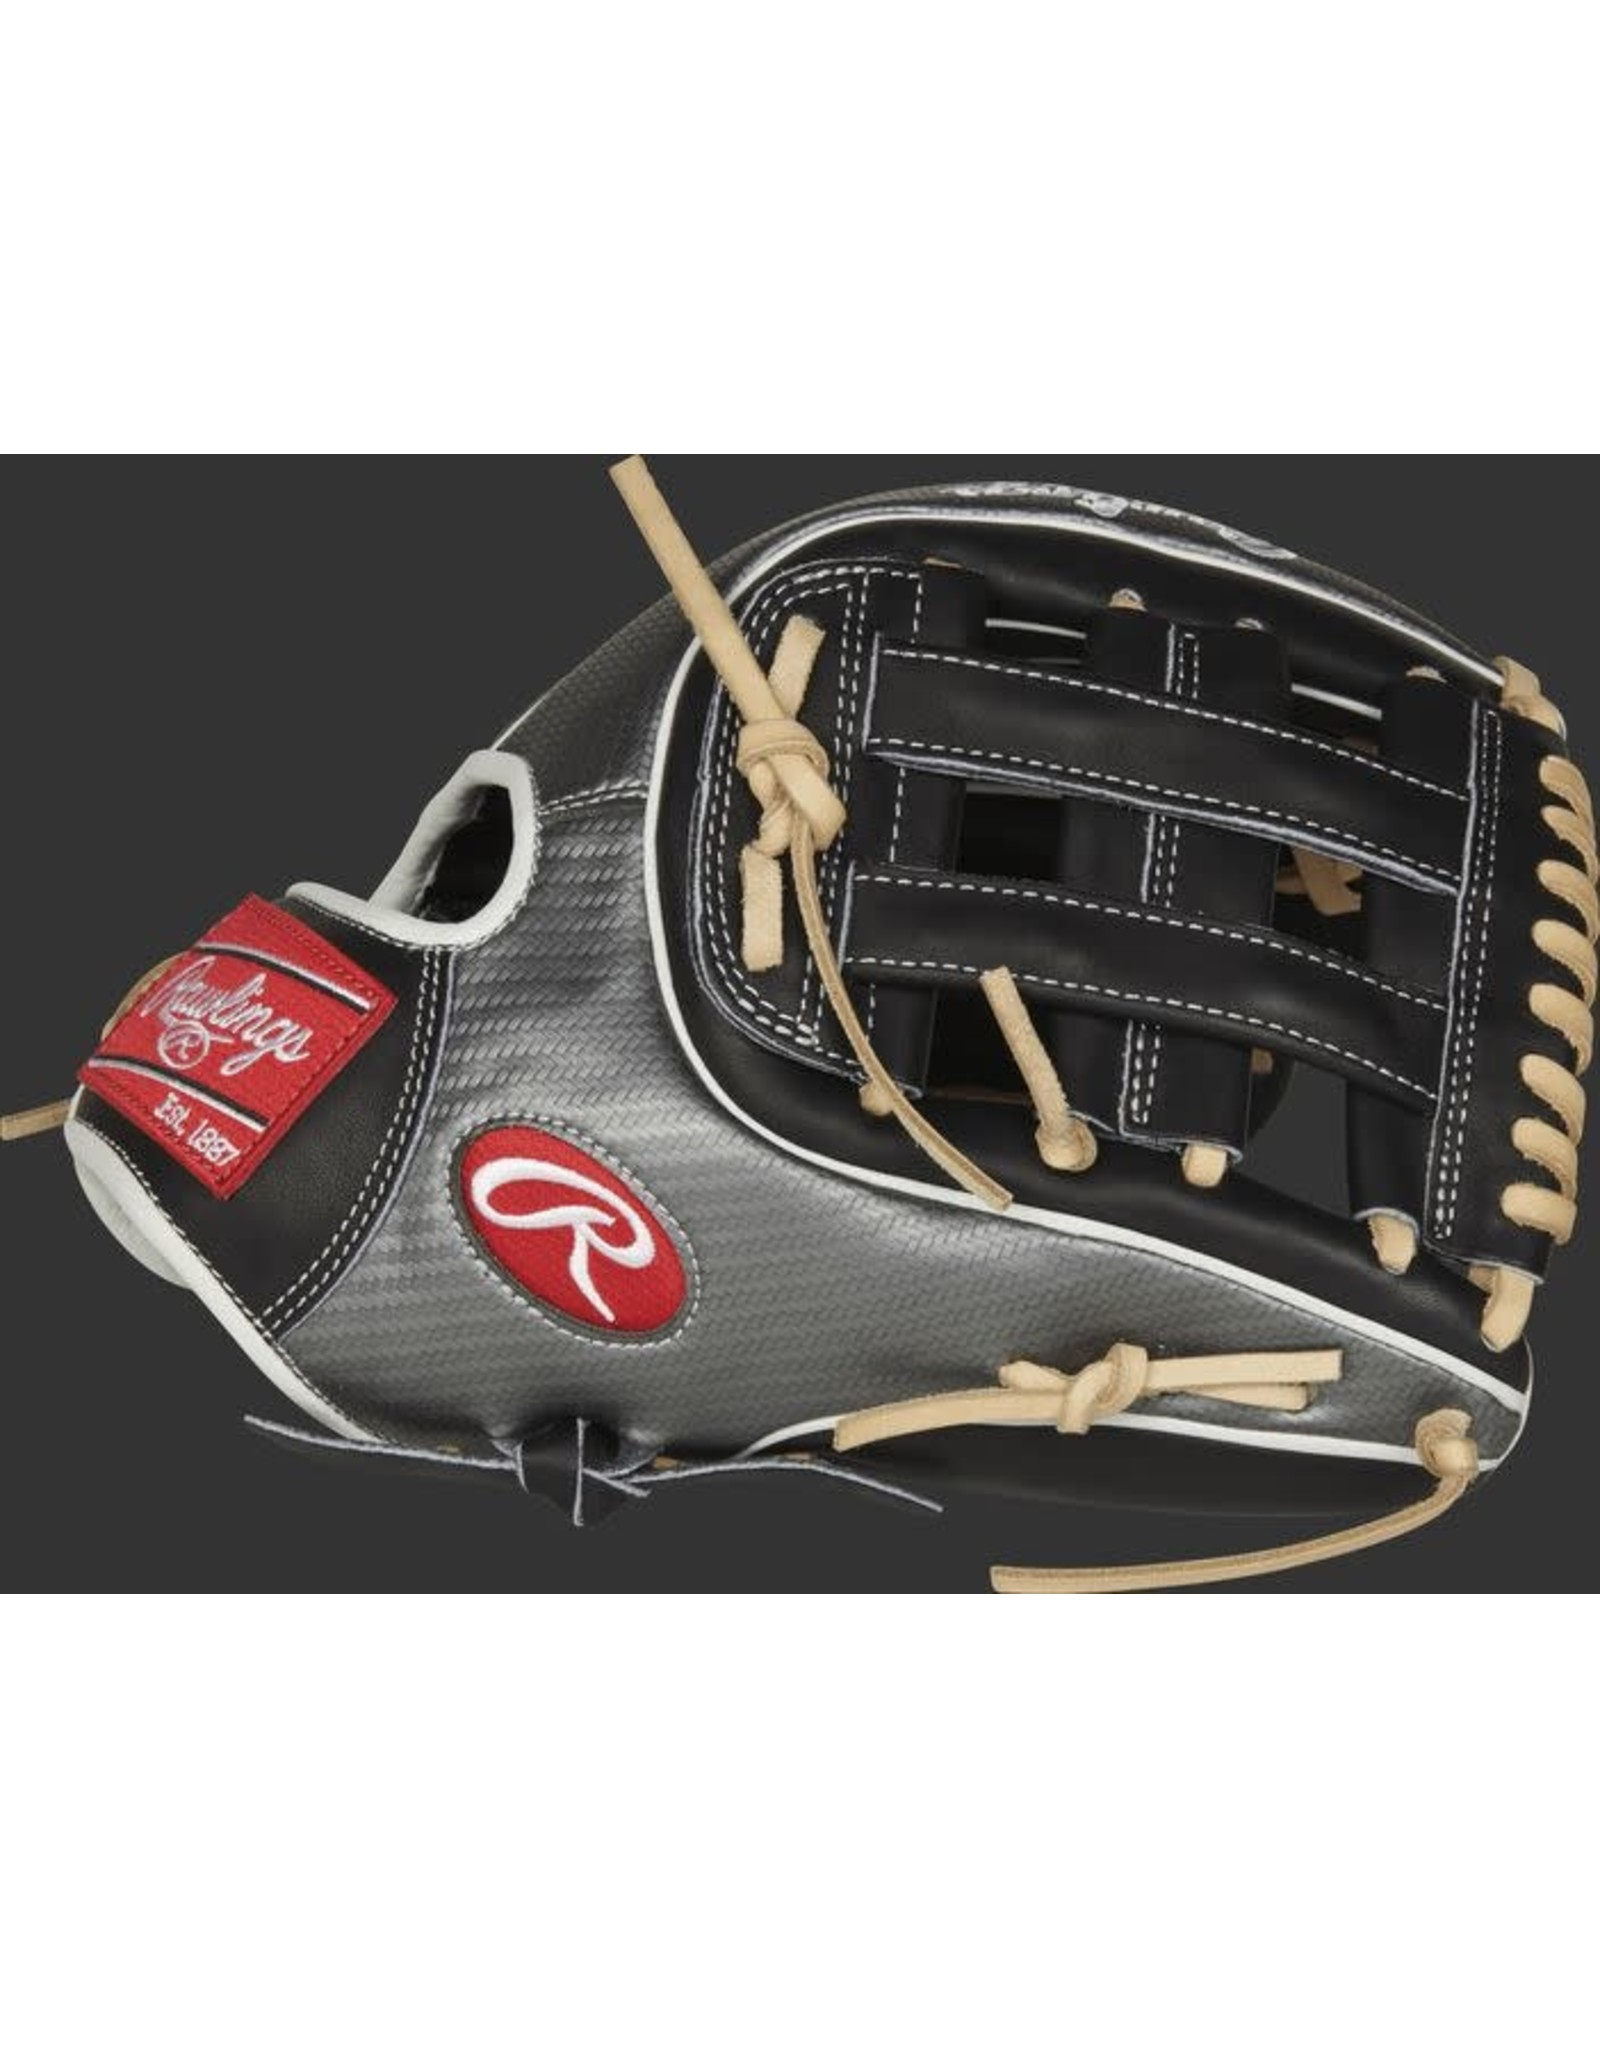 Rawlings RAWLINGS HYPER SHELL 11.75-INCH INFIELD GLOVE - HEART OF THE HIDE